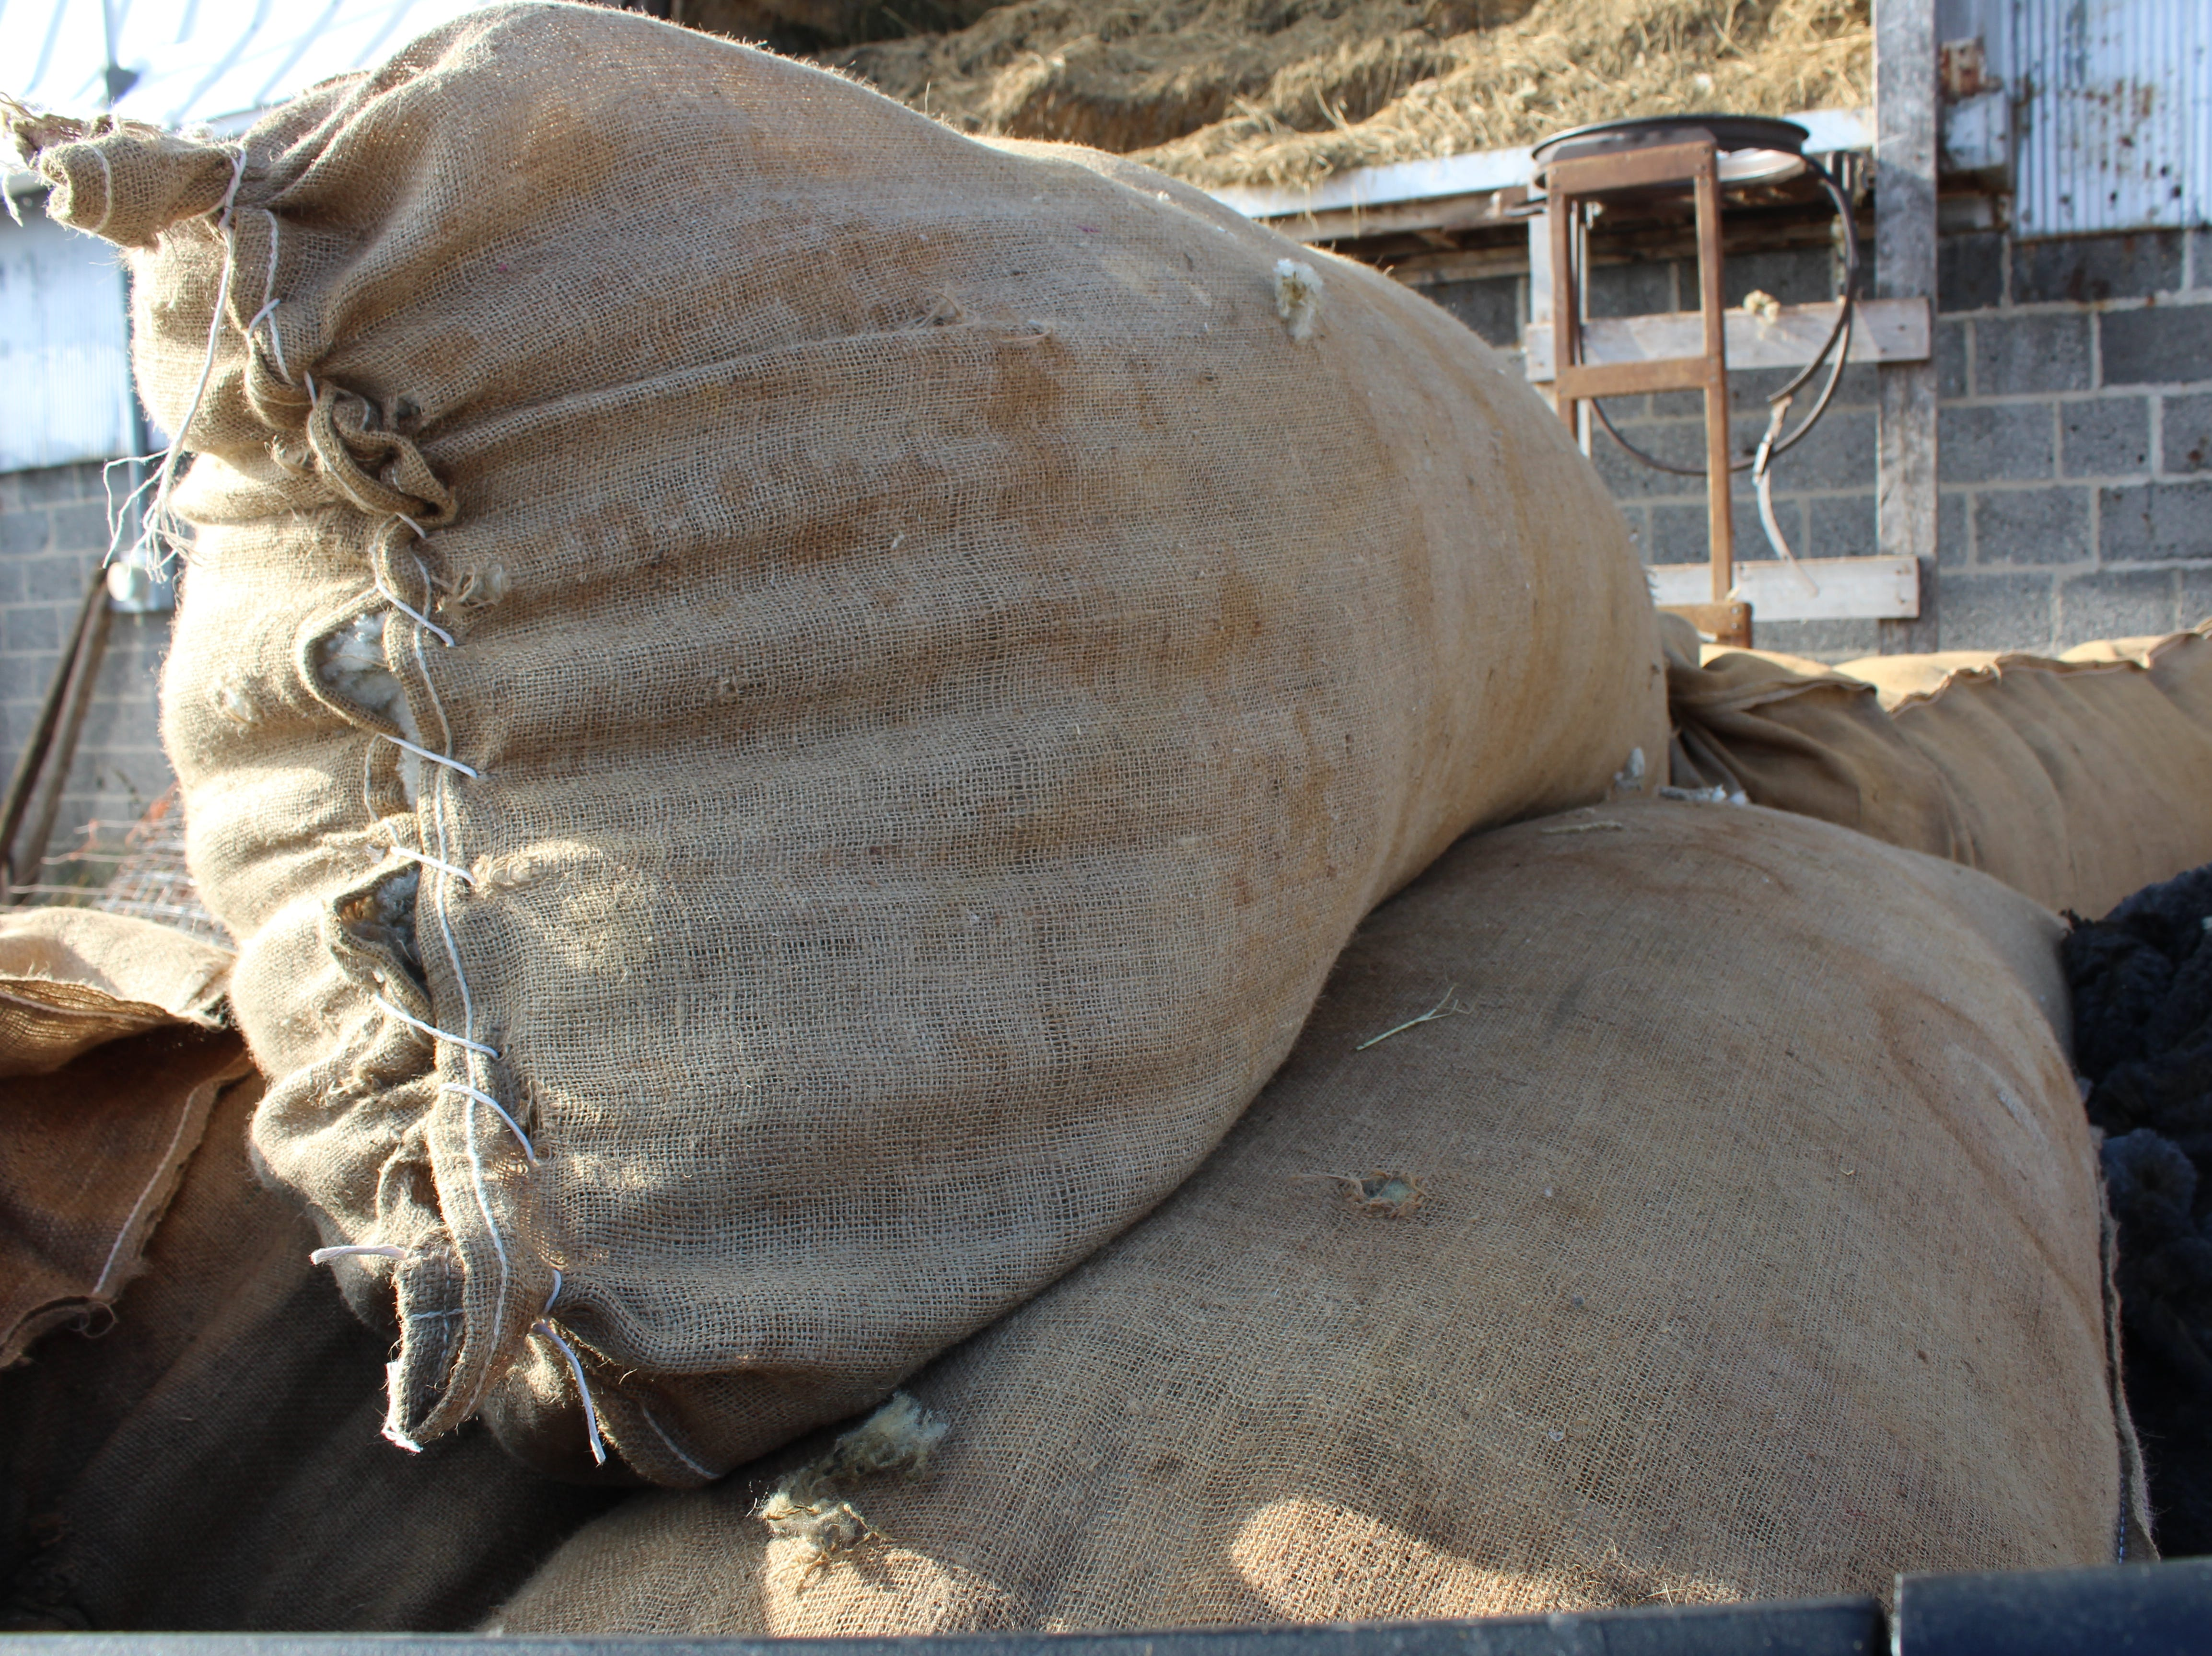 Four large bags of farm flock wool are headed to a buyer in Illinois to be  used in the carpet industry.